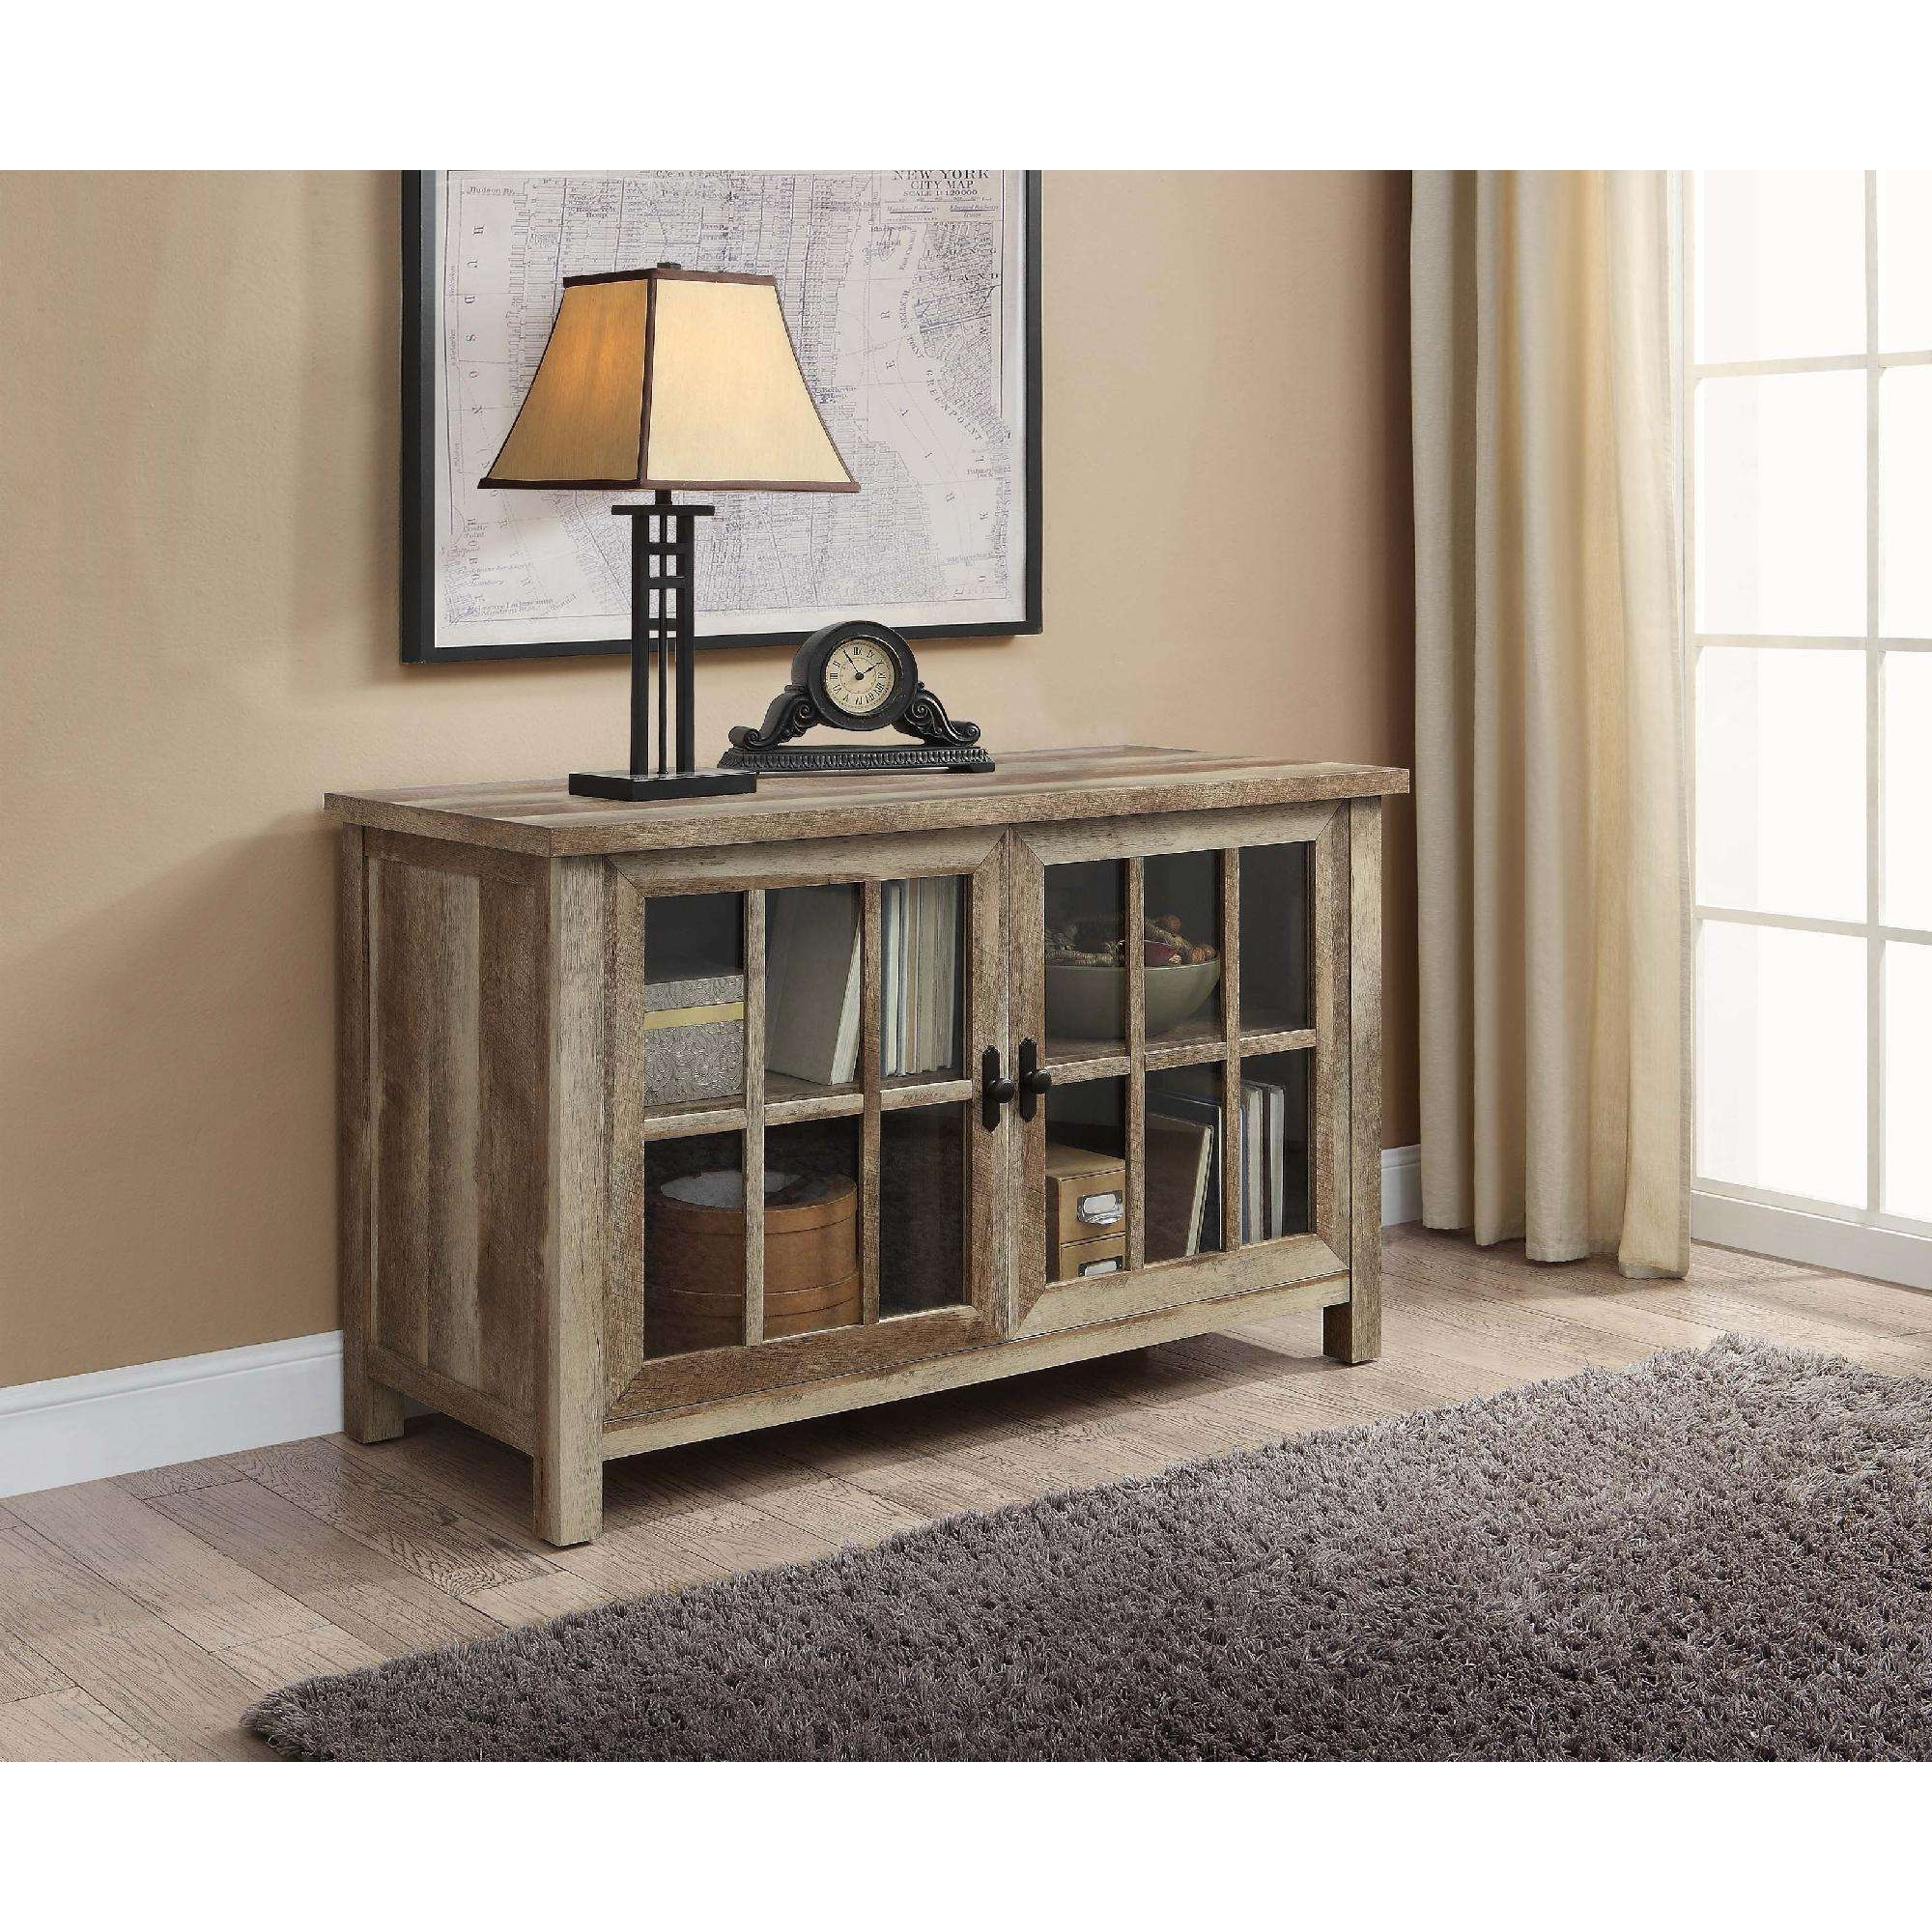 Better Homes Fireplace Tv Stand Best Fireplace 2017 Cheap Homes Tv Within Square Tv Stands (View 6 of 15)